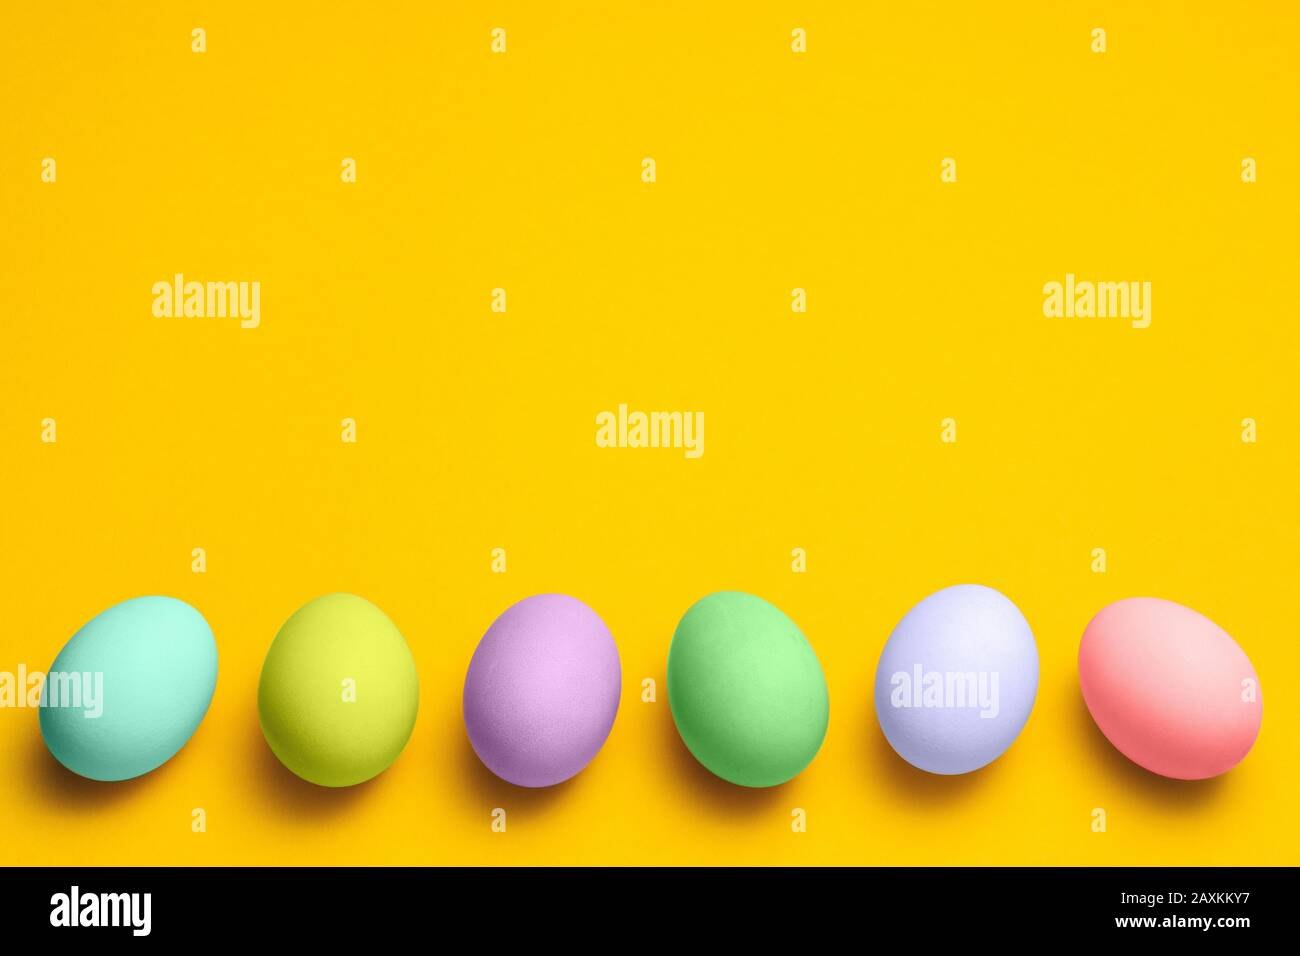 easter eggs painted in pastel colors on a yellow background with copyspace. easter advertise minimalist concept design Stock Photo